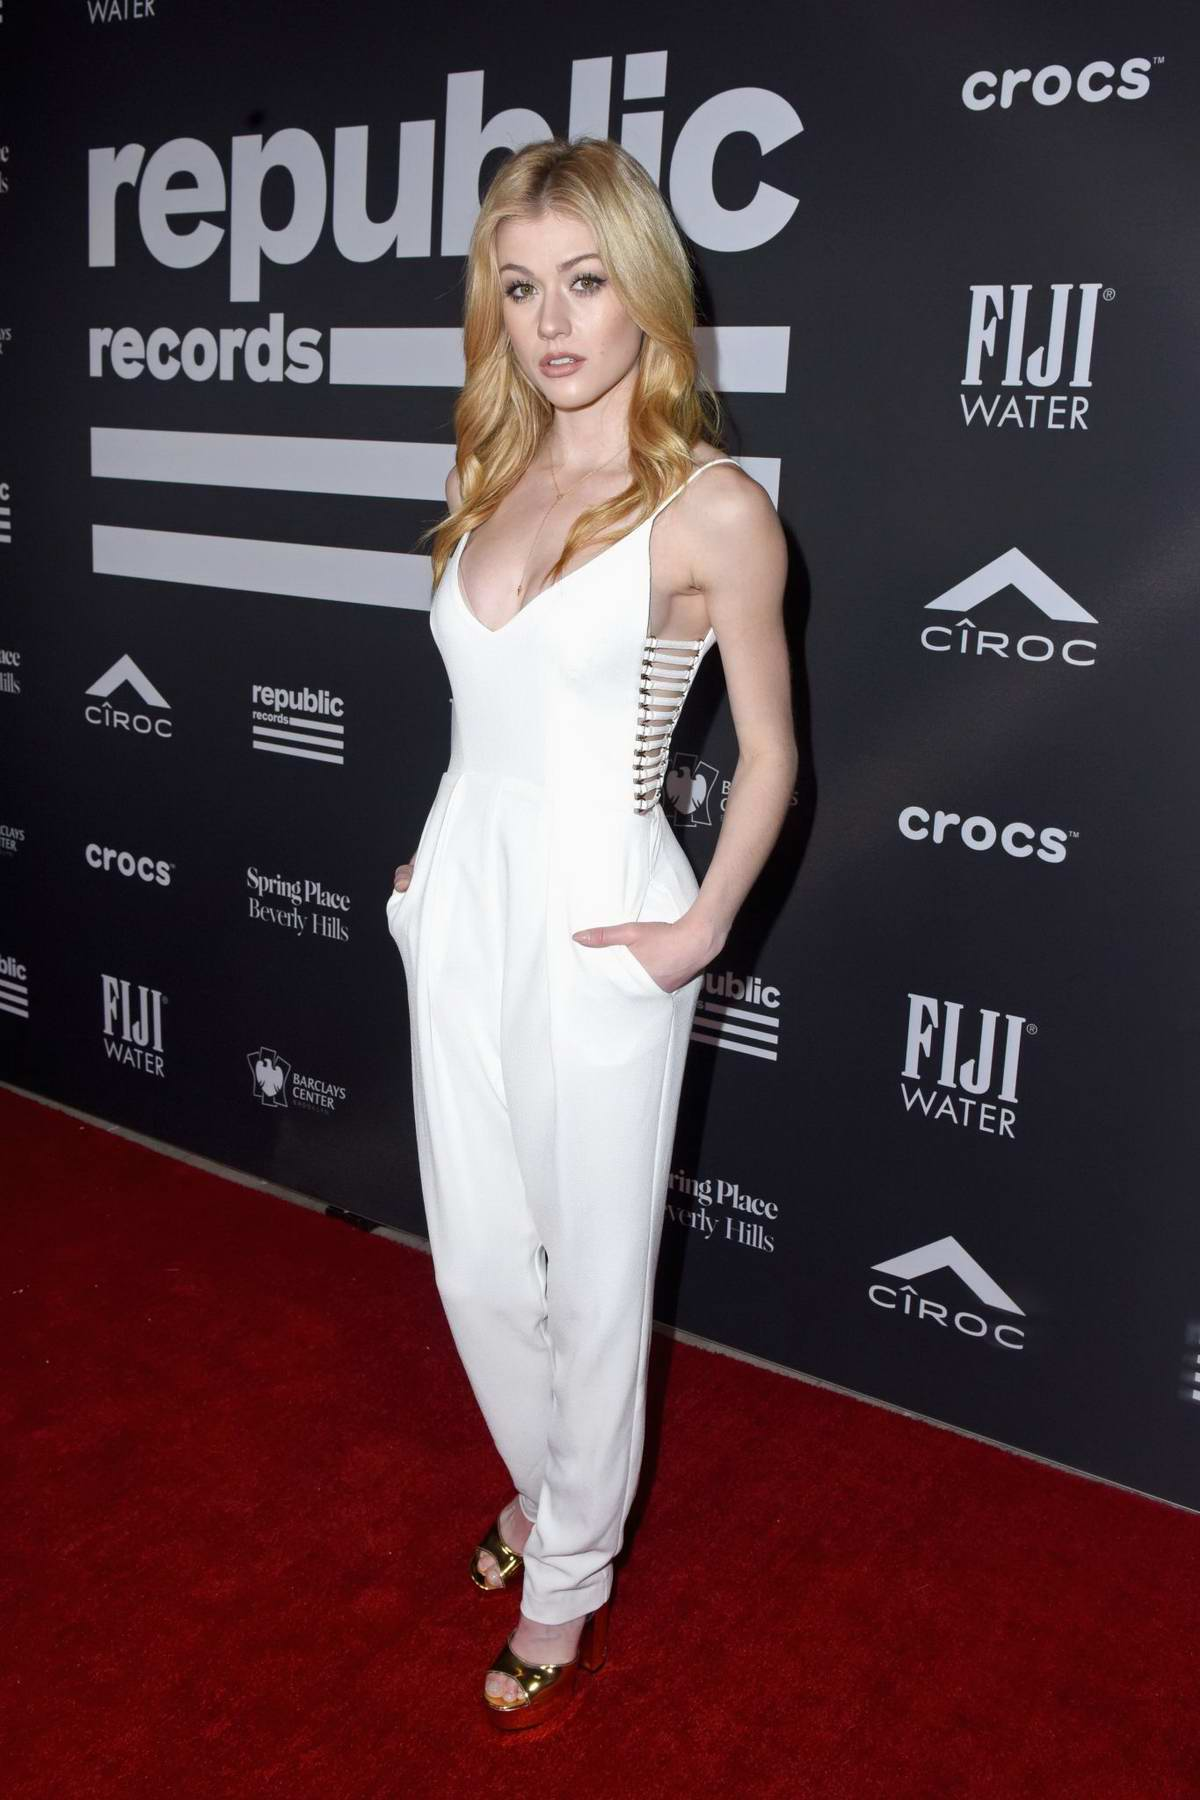 Katherine McNamara attends Republic Records' Grammys 2019 After Party in Los Angeles